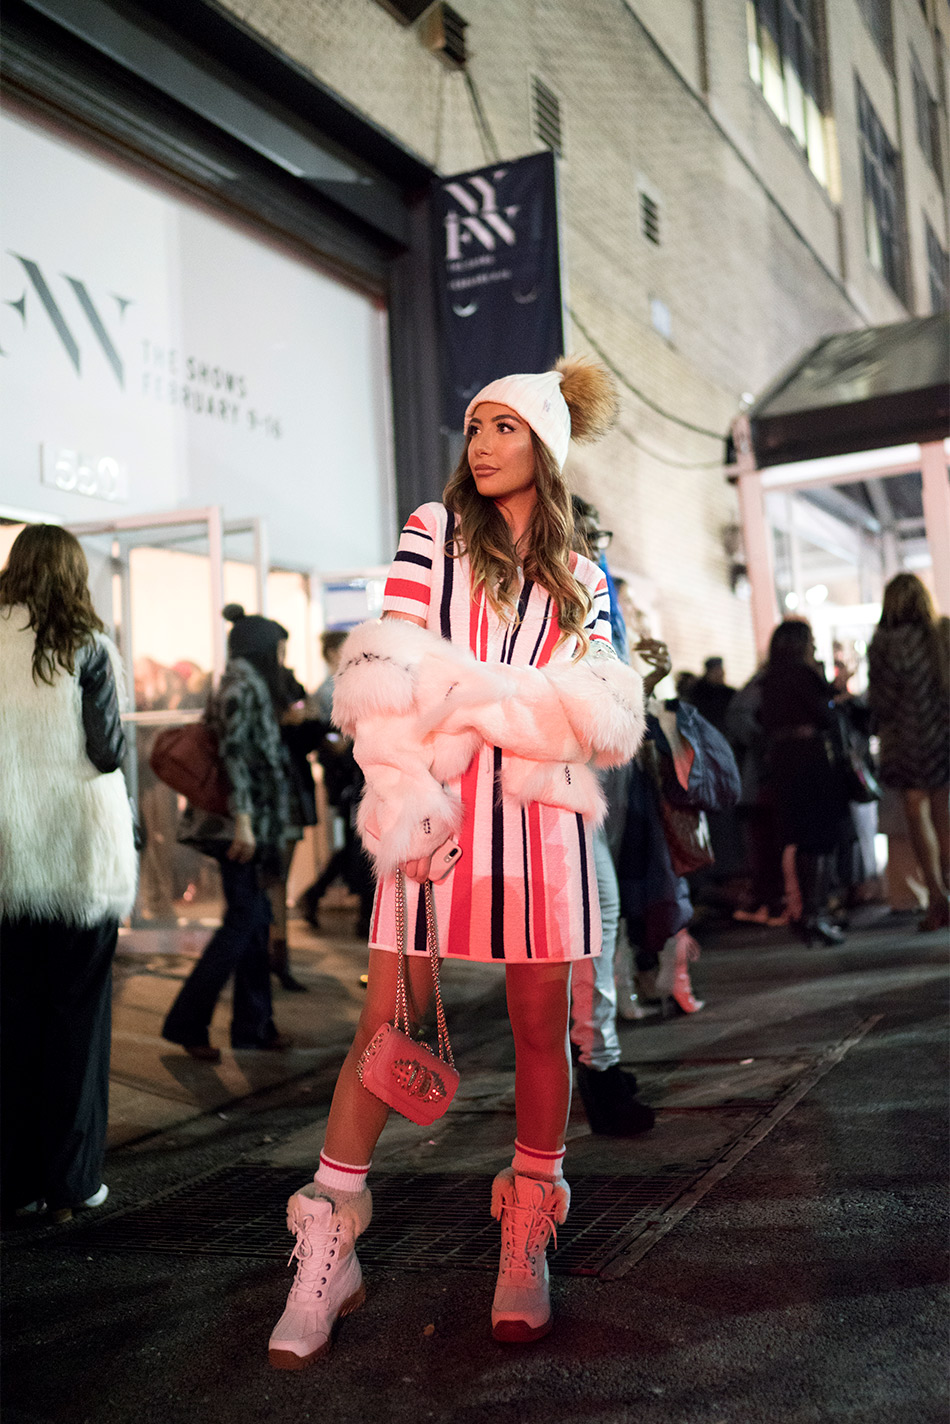 Ulia Ali in Tularose striped 70s dress from Revolve during NYFW.